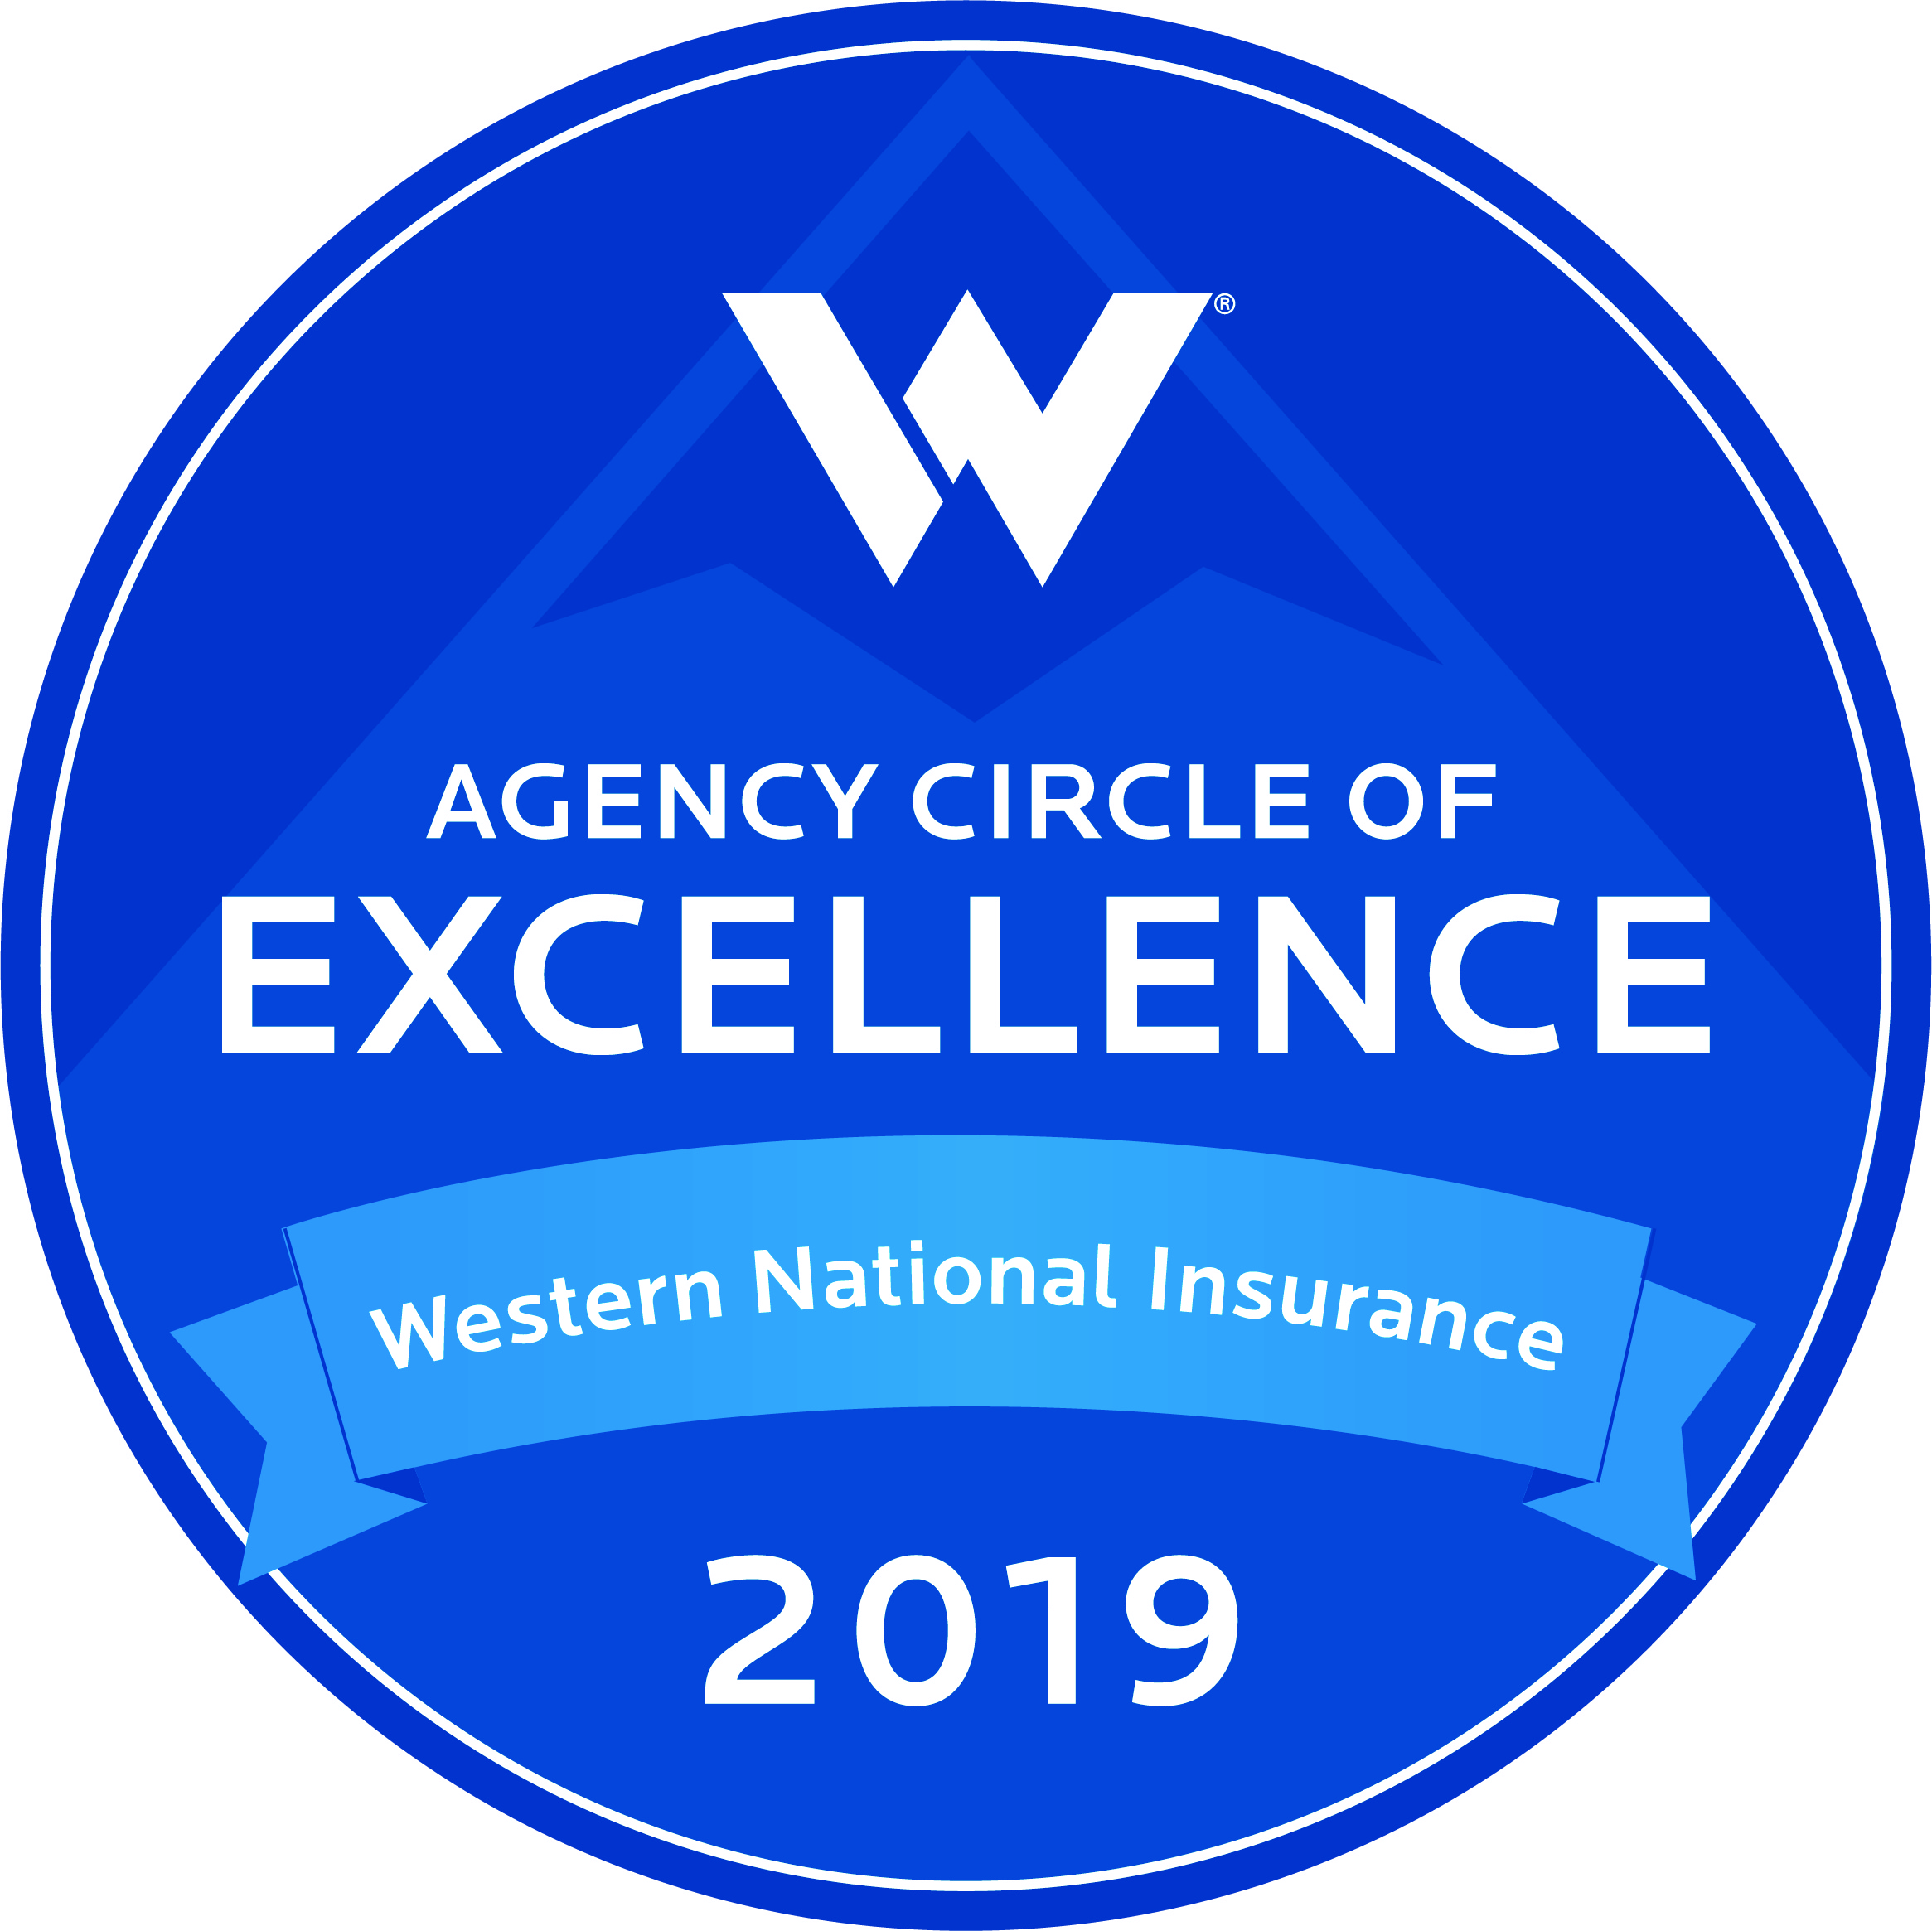 agency circle of excellence